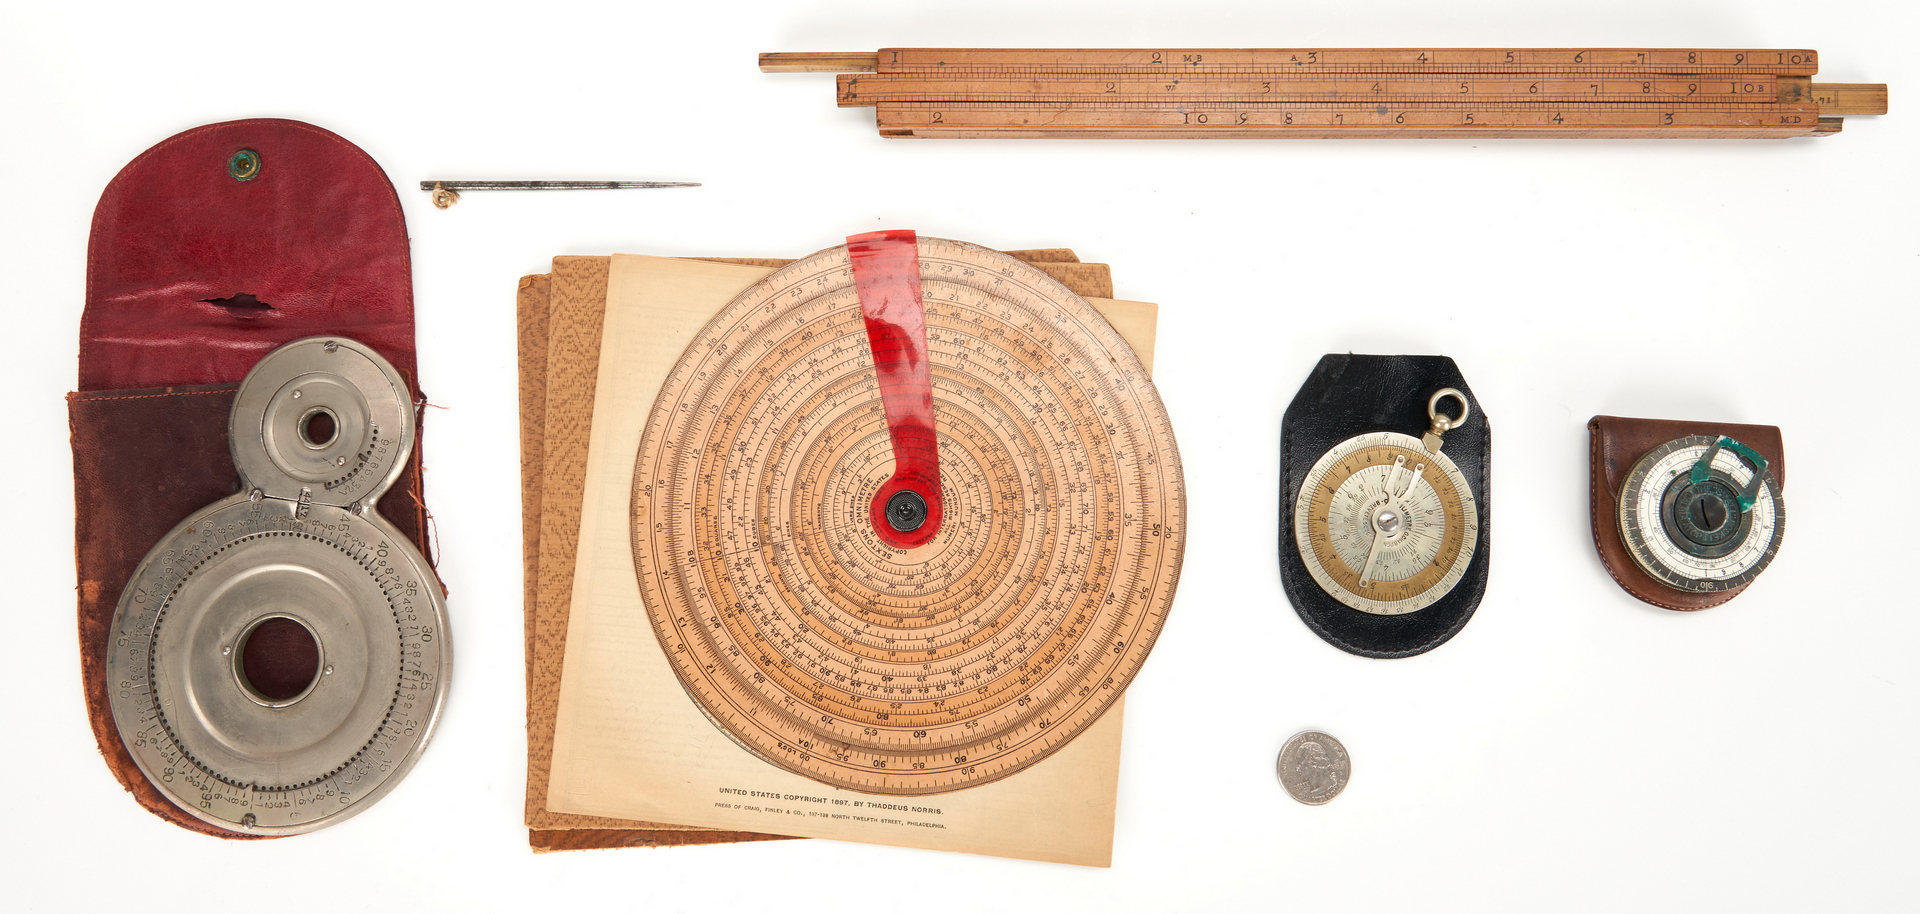 Lot 639: 5 Early Calculators/Slide Rules, incl. G. Small